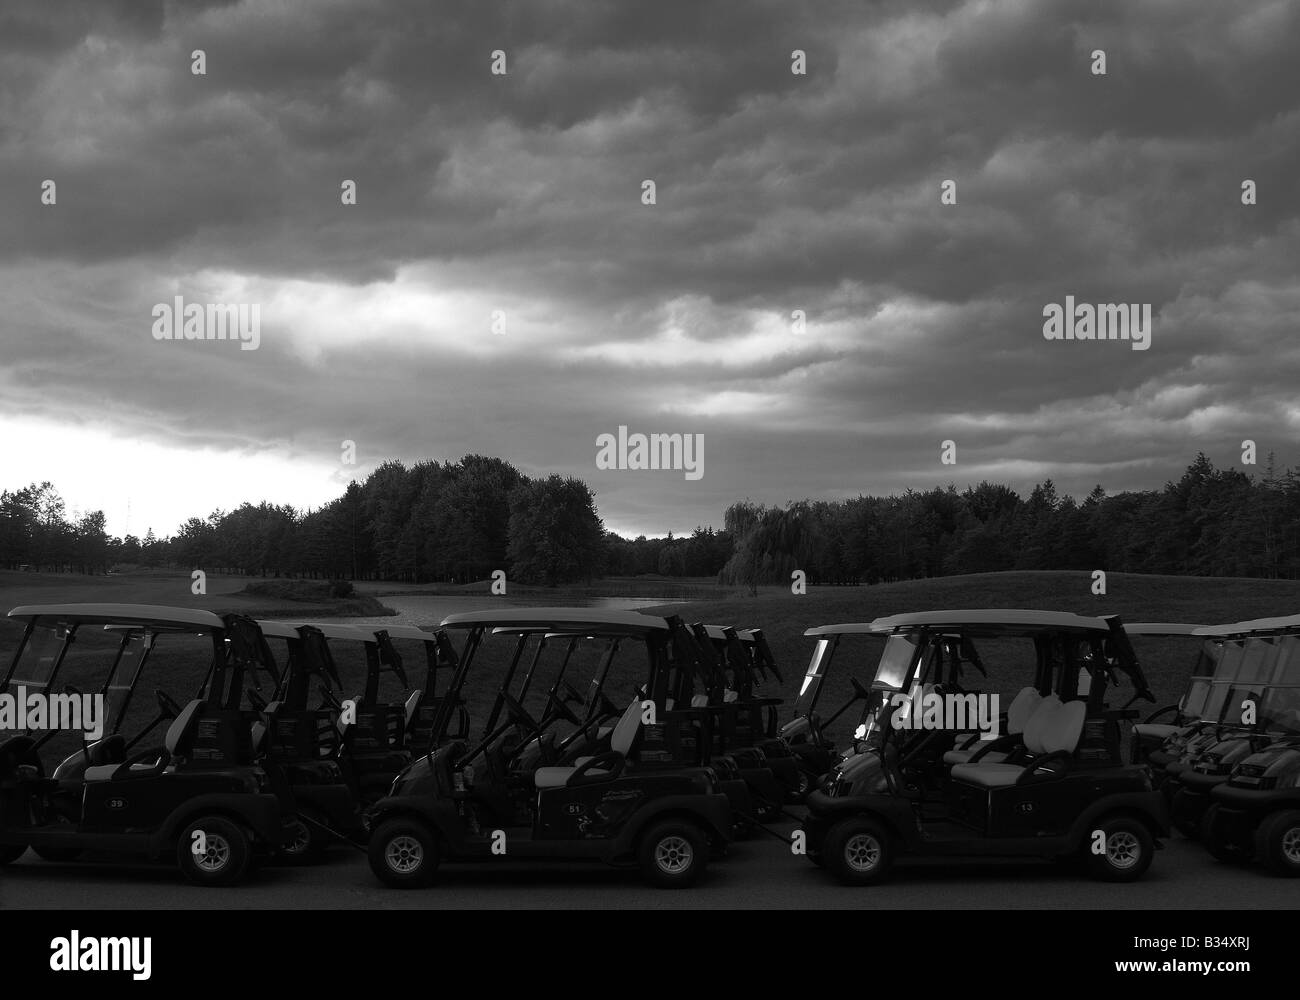 Golfers Black and White Stock Photos & Images - Alamy on